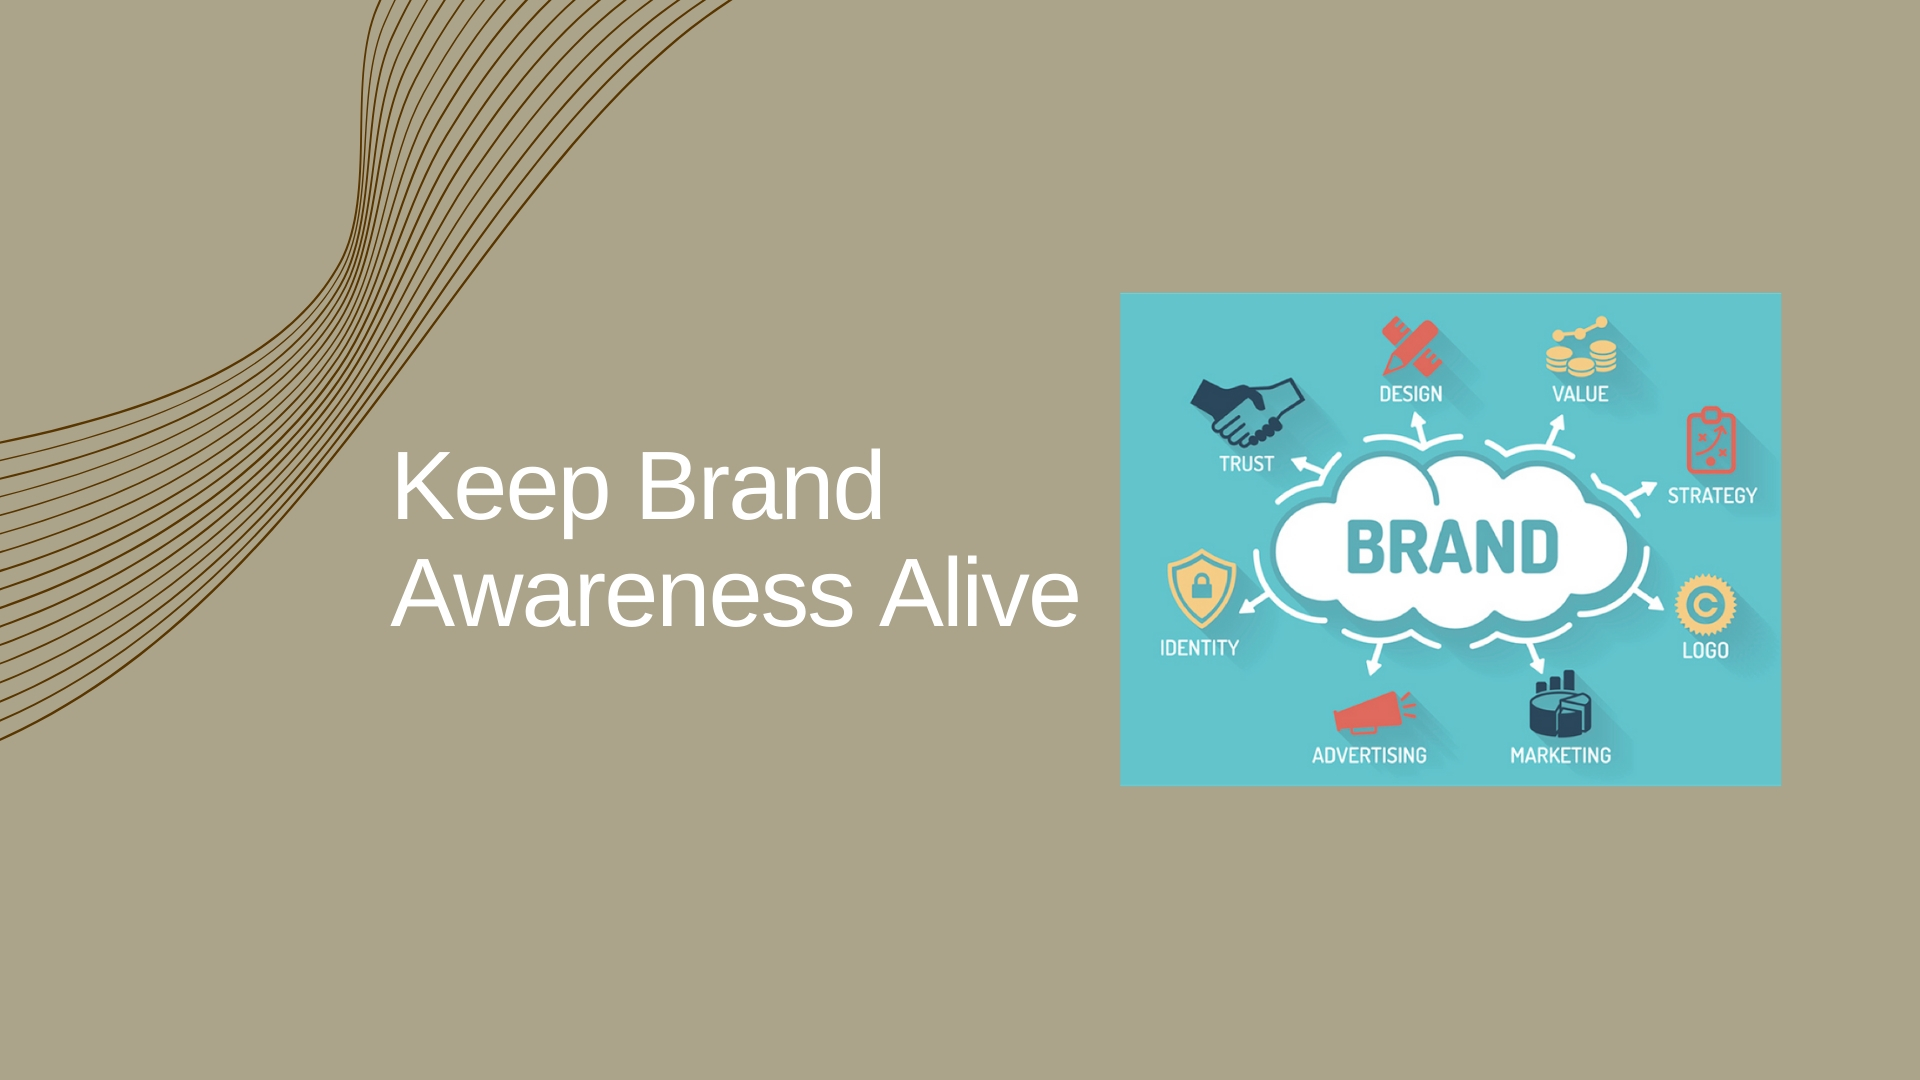 Keep Brand Awareness Alive